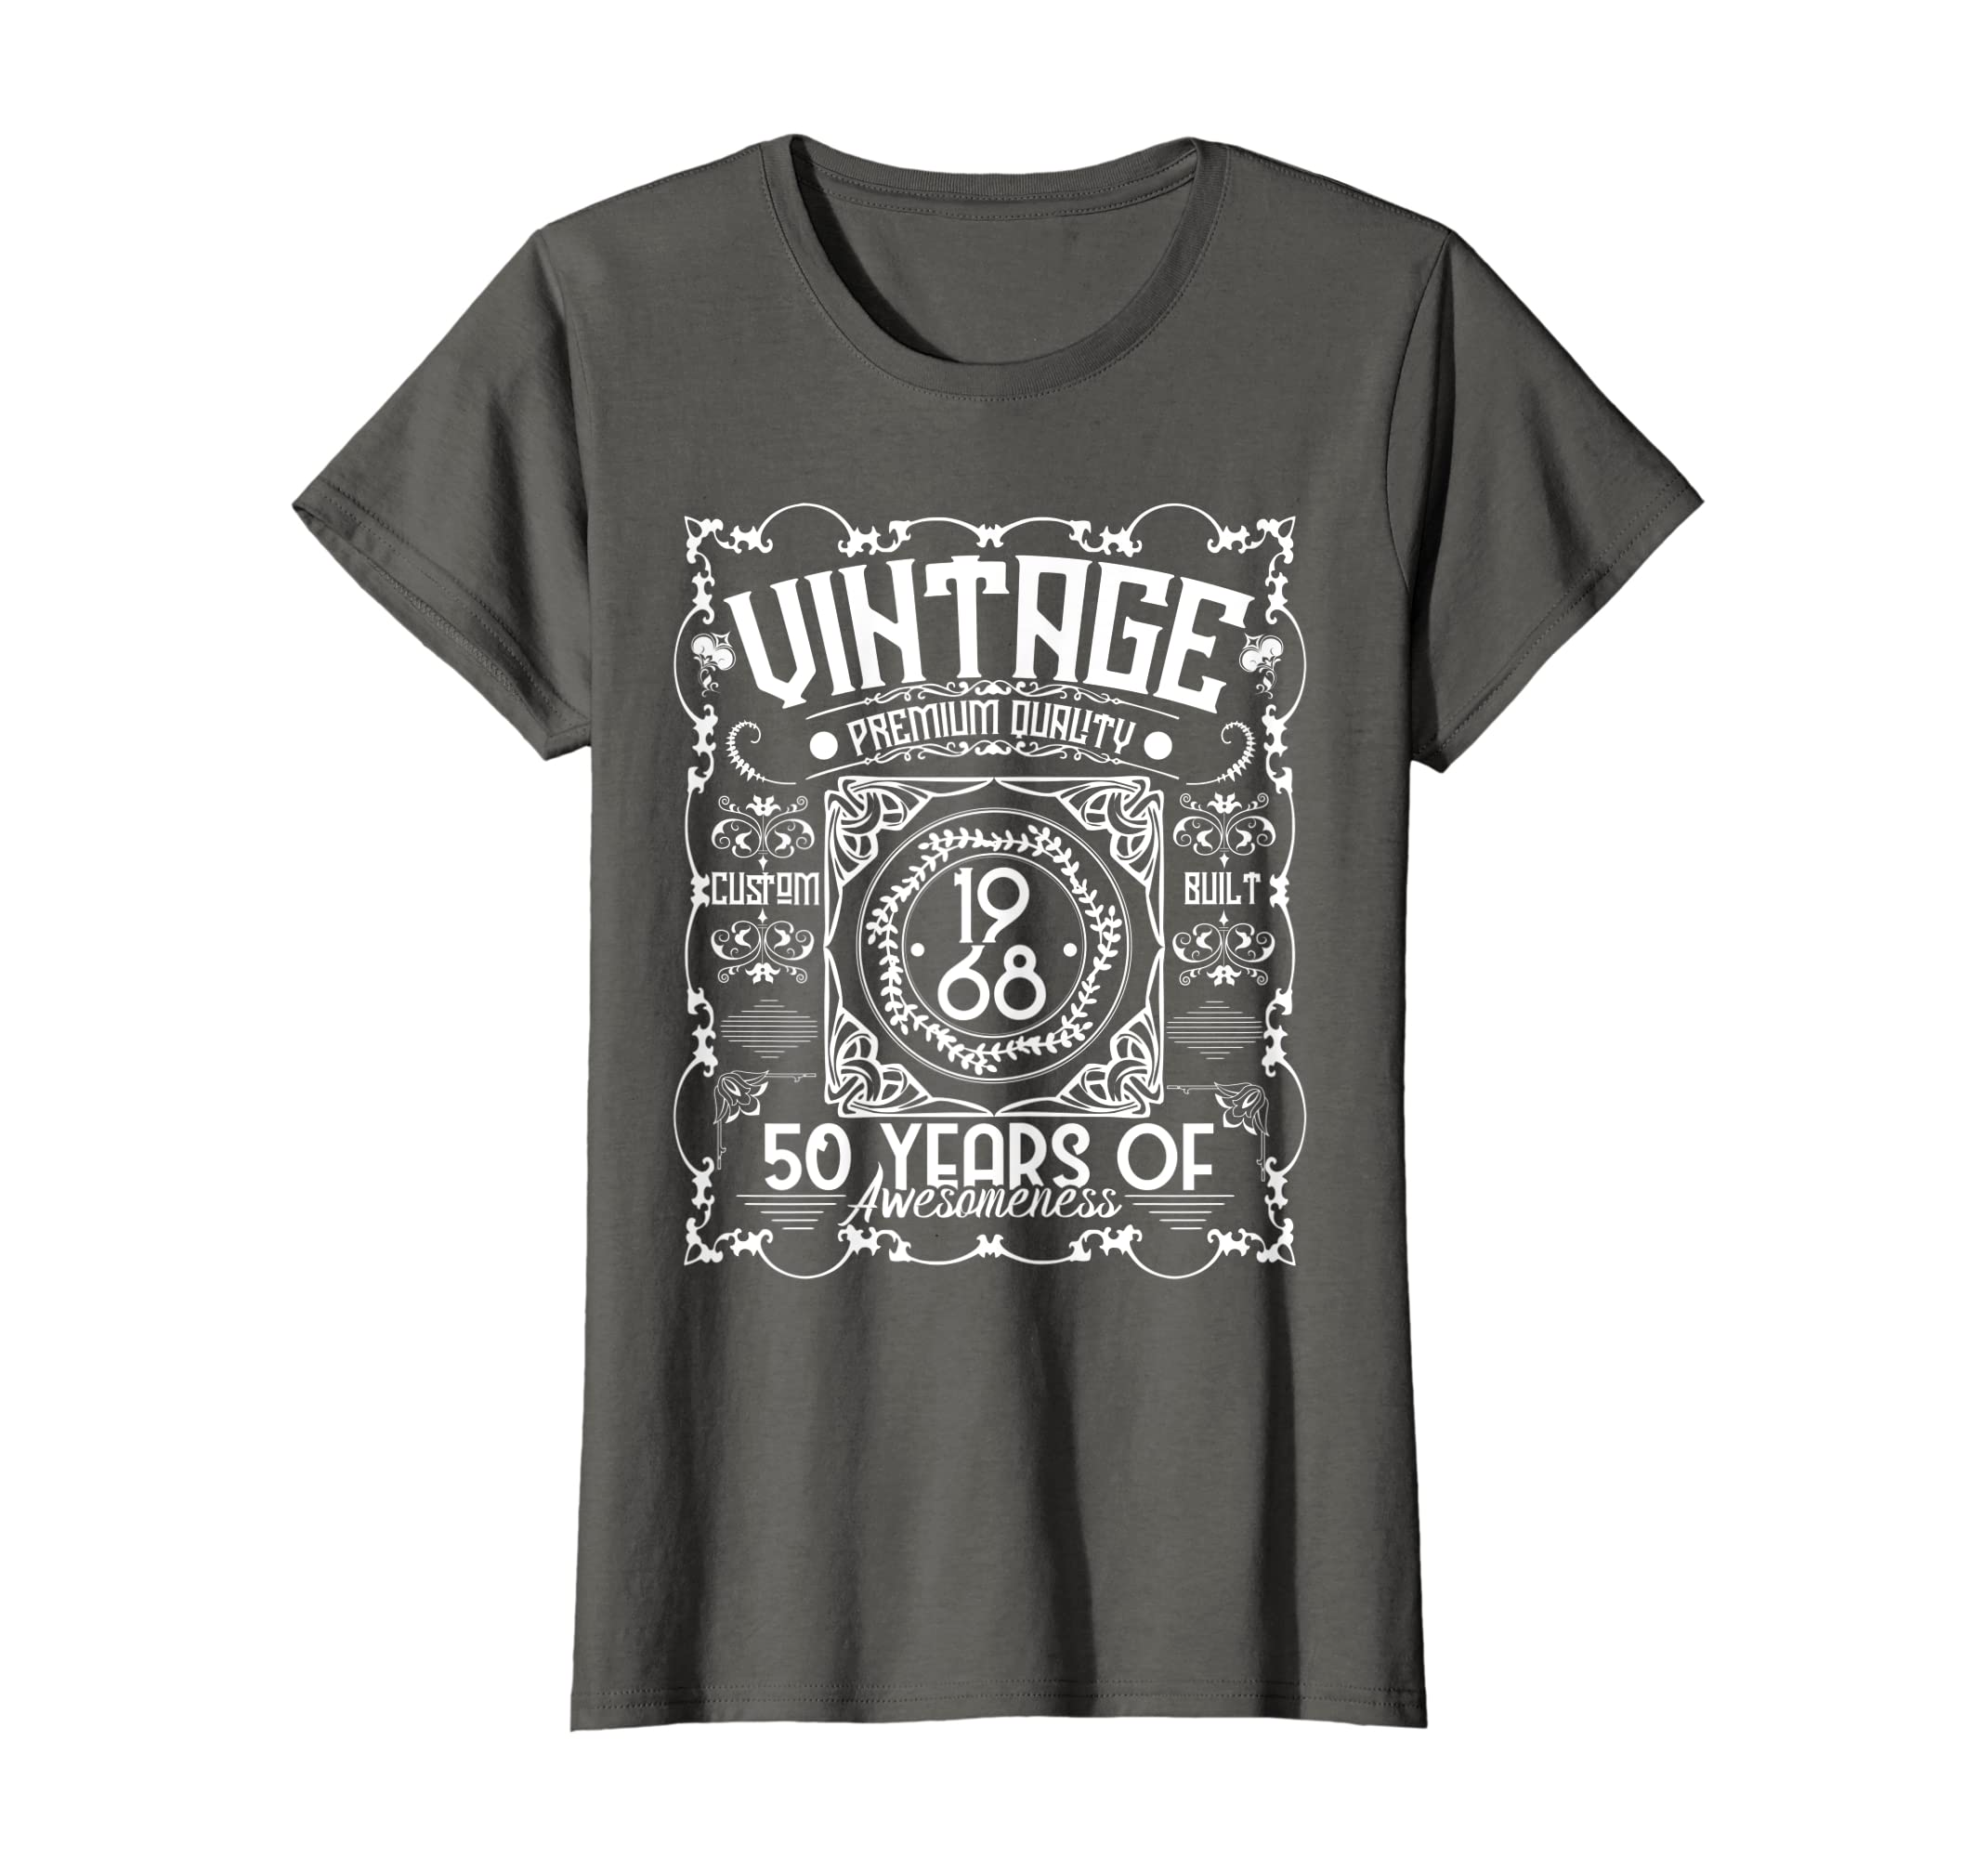 Amazon 50th Birthday T Shirt 1968 Vintage 50 Years Of Awesomeness Clothing